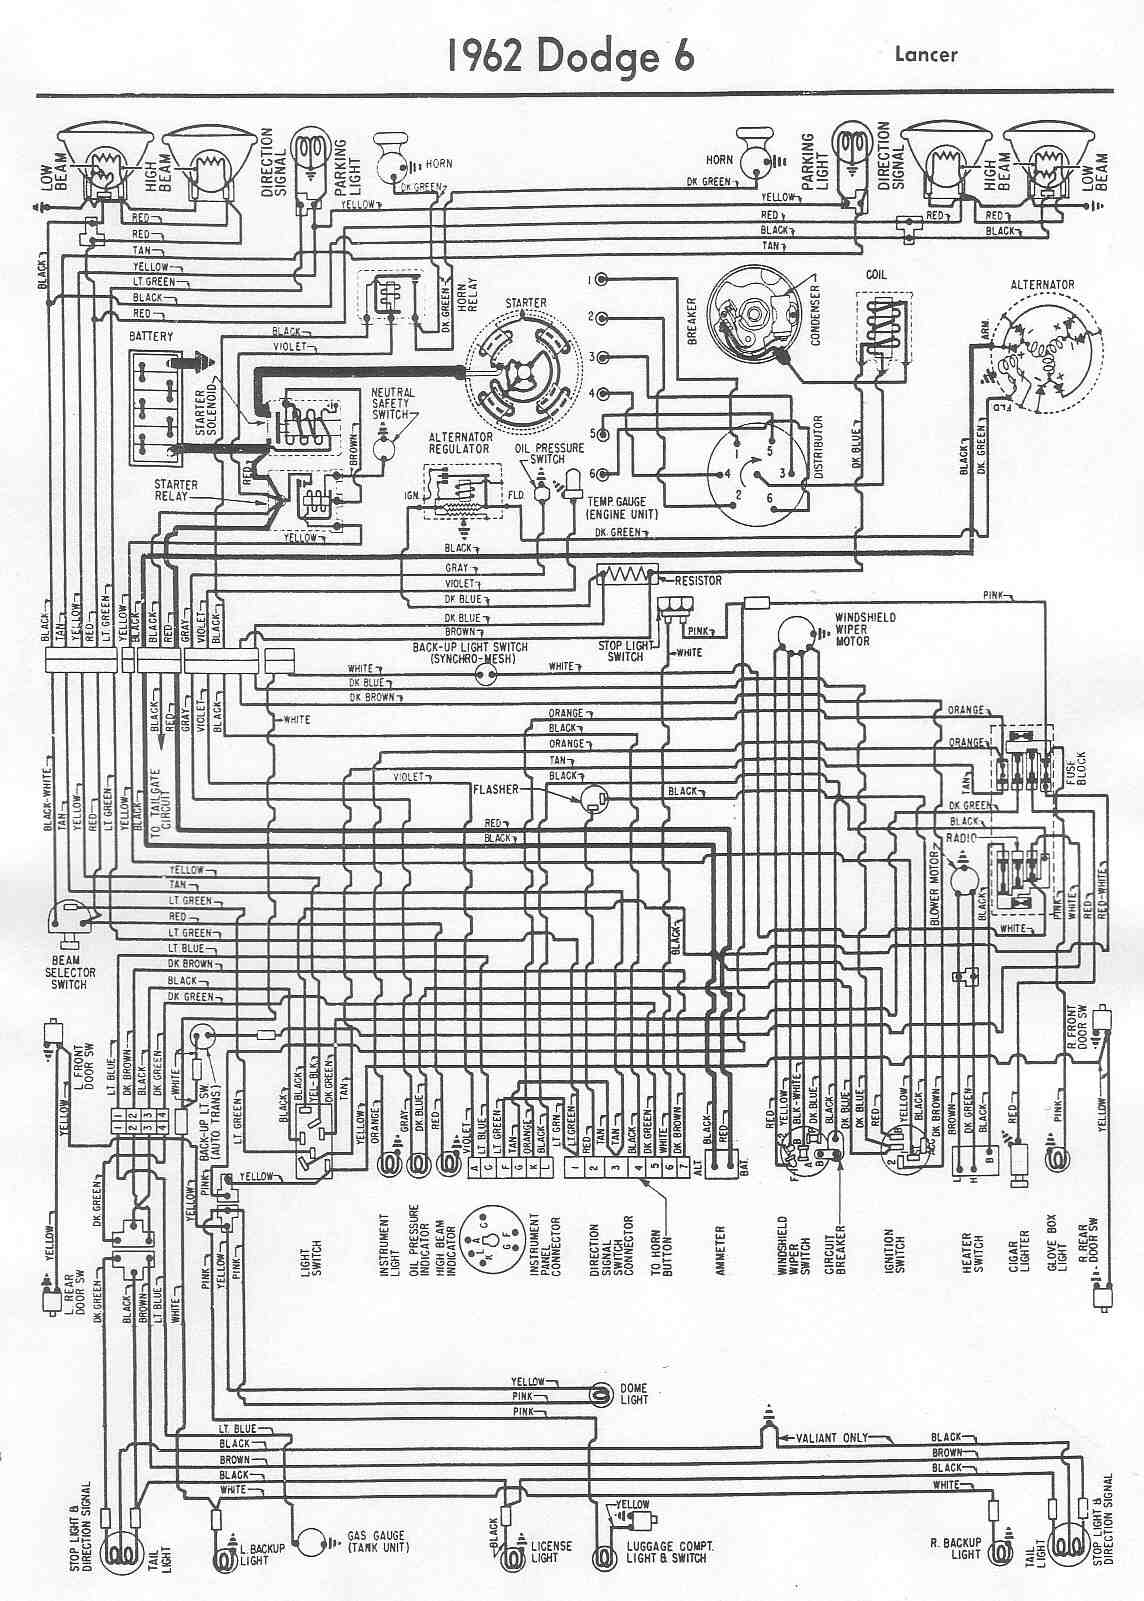 Dodge car manuals wiring diagrams pdf fault codes download cheapraybanclubmaster Choice Image